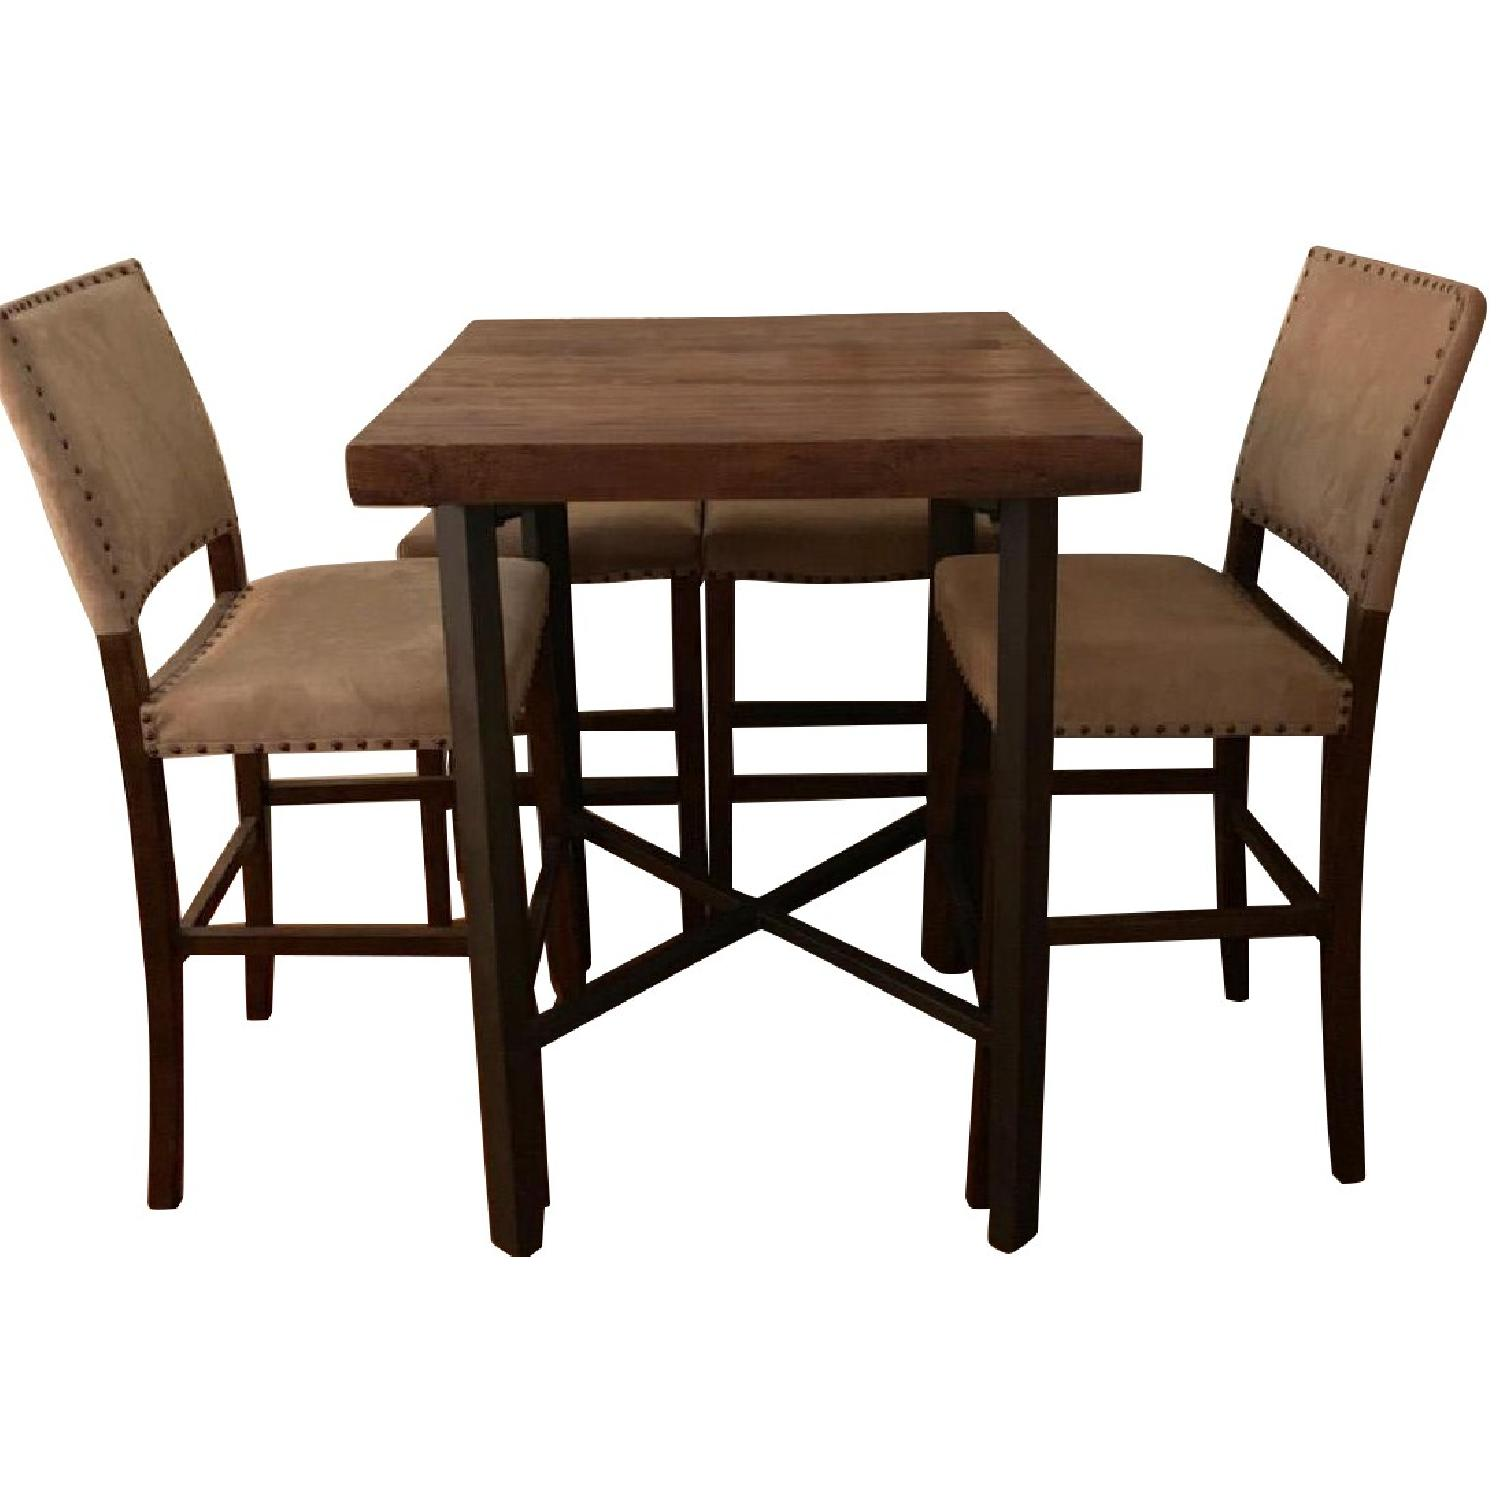 Pottery Barn Griffin Reclaimed Wood Table w/ 4 Chairs